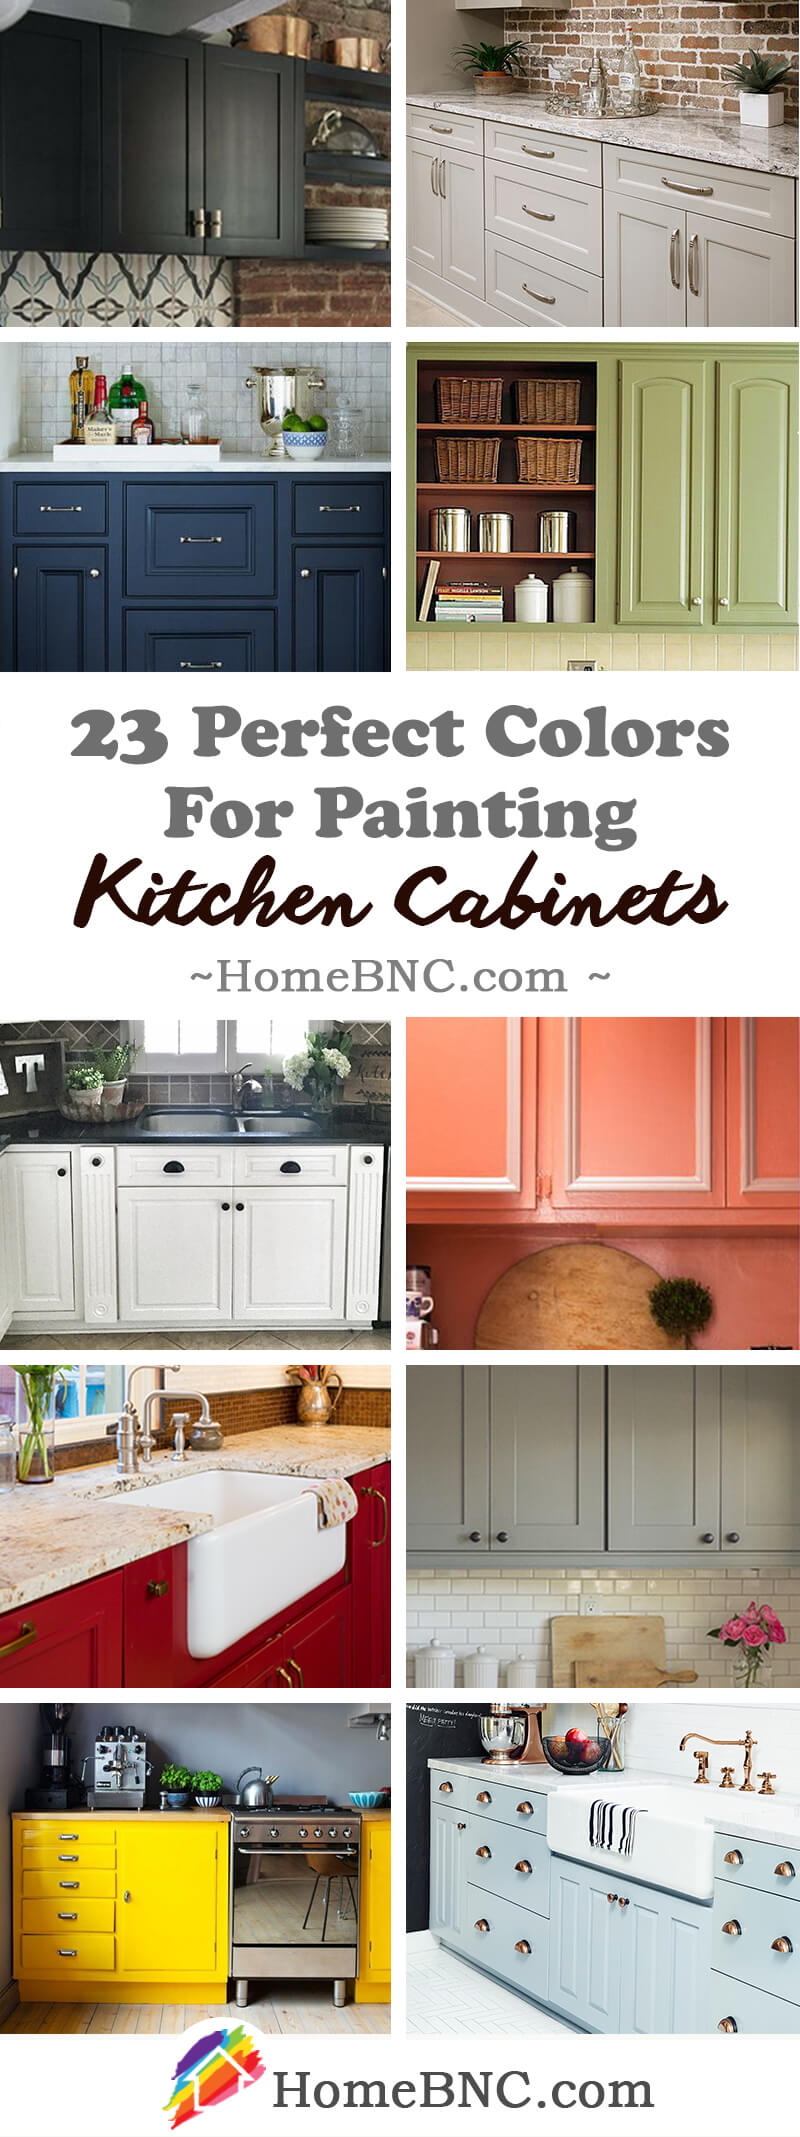 Kitchen Cabinets Painting Color Ideas